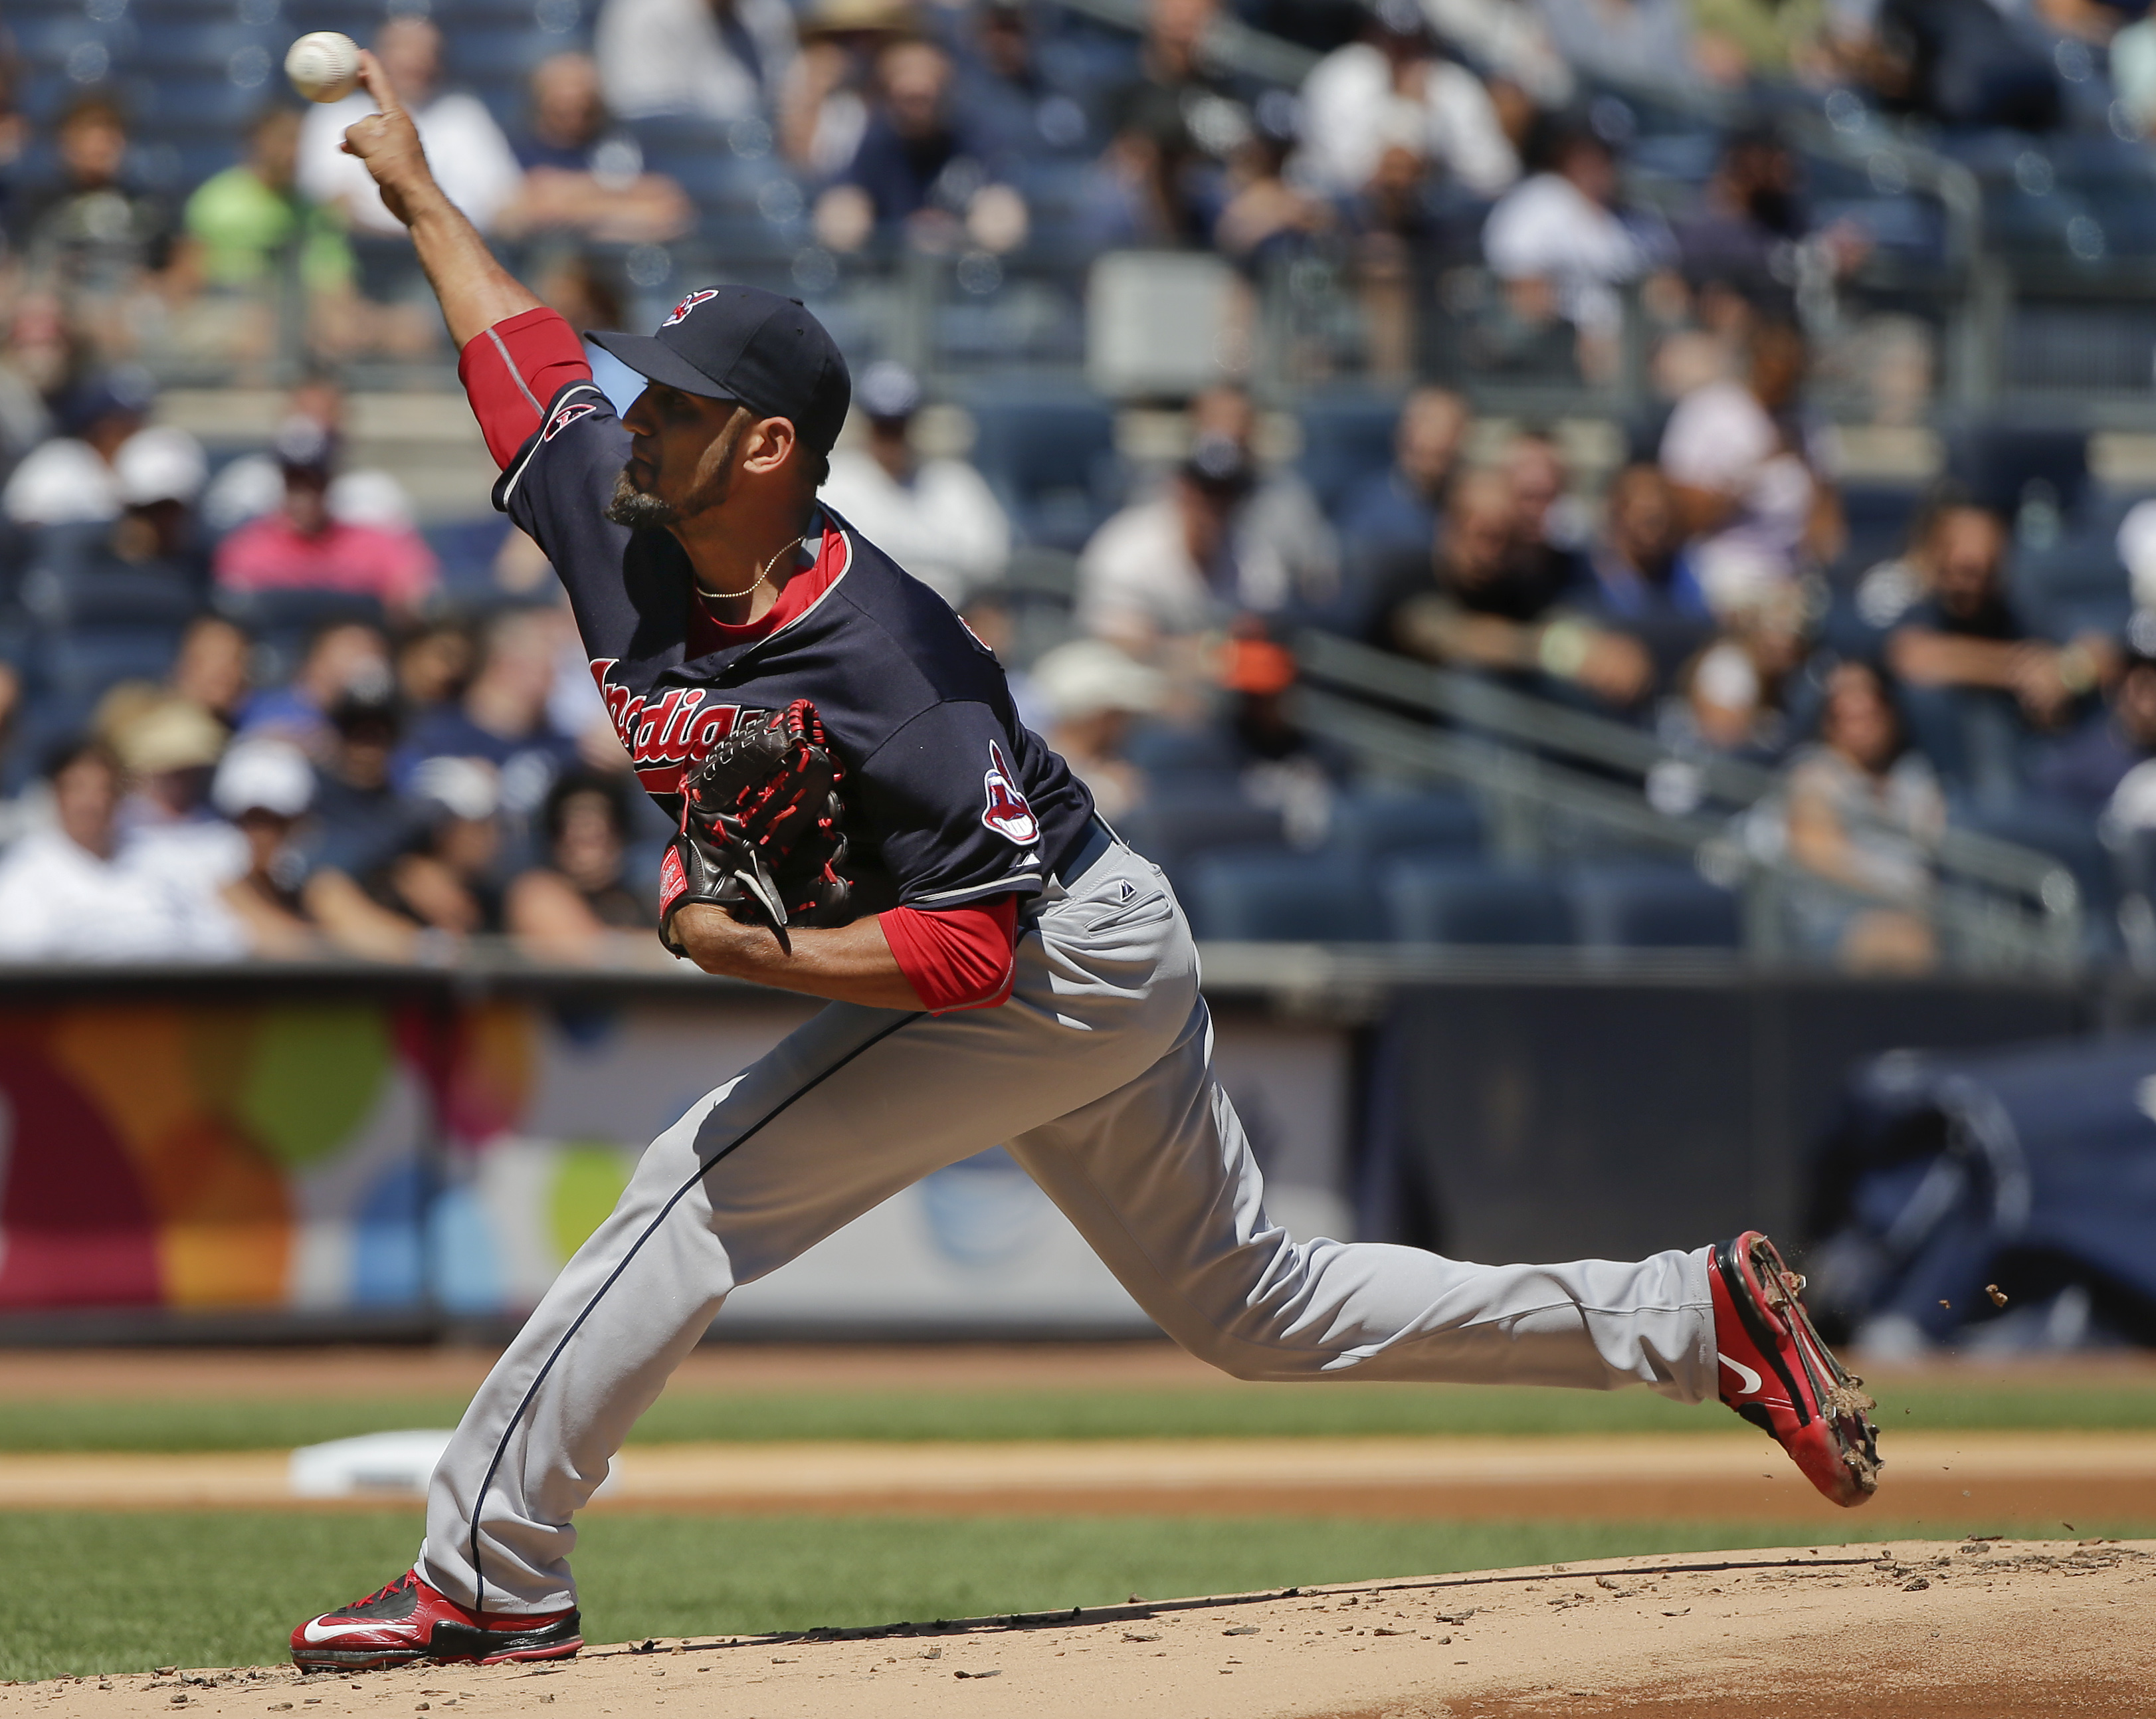 Cleveland Indians pitcher Danny Salazar delivers against the New York Yankees during the first inning of a baseball game, Saturday, Aug. 22, 2015, in New York. (AP Photo/Julie Jacobson)